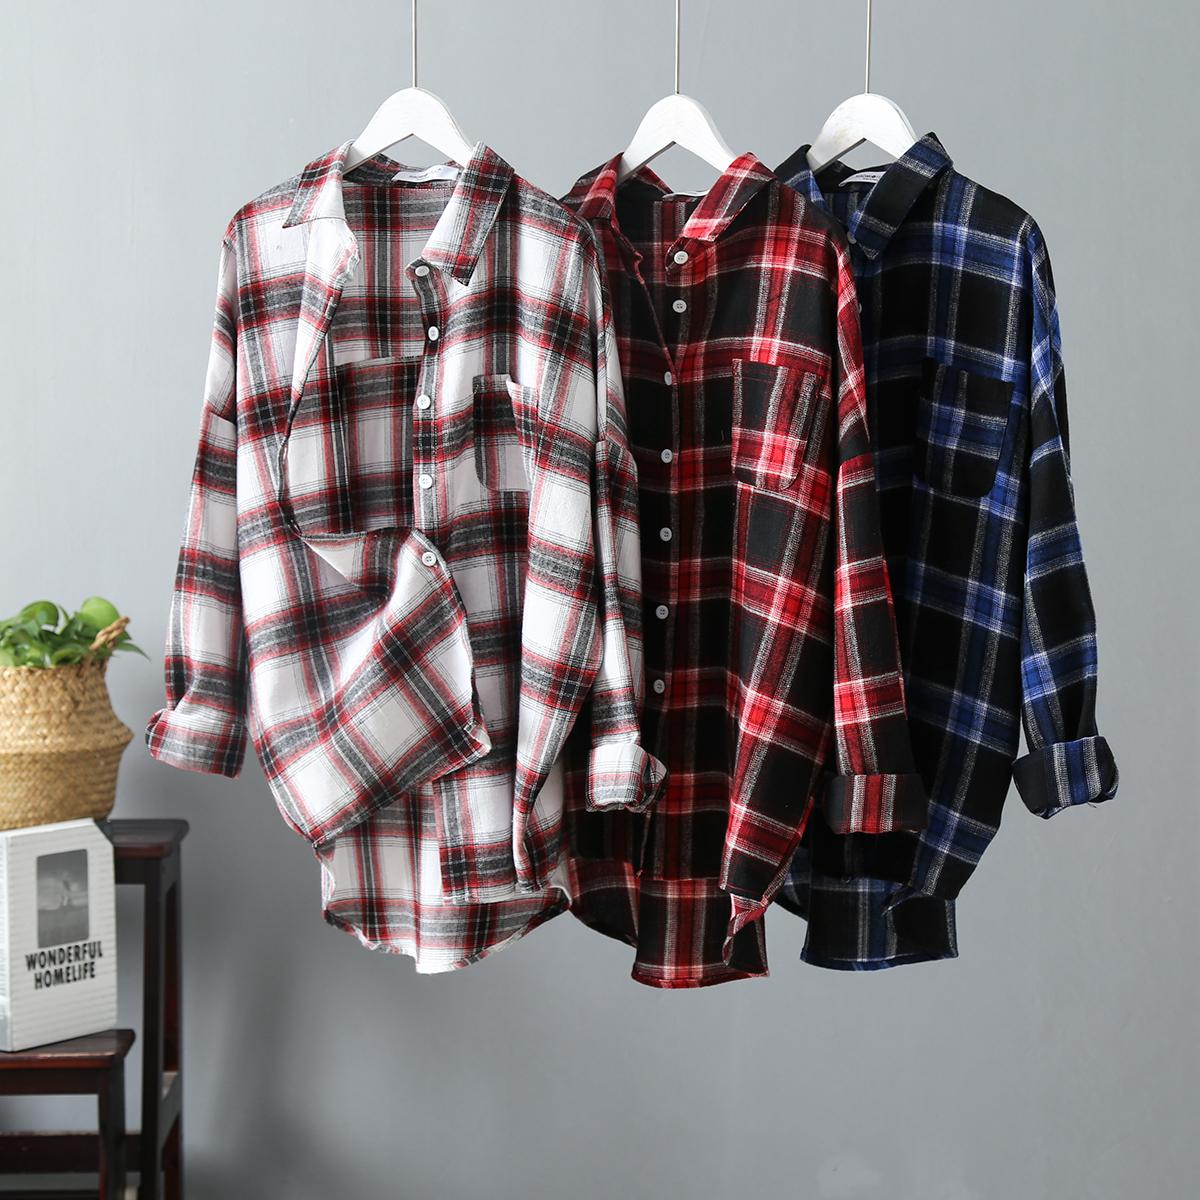 Korean Fashion Plaid Shirt Casual Womens Tops And Blouses Spring Autumn Ladies Long Sleeve Blouse Plus Size Cotton Blusas Mujer in Blouses amp Shirts from Women 39 s Clothing